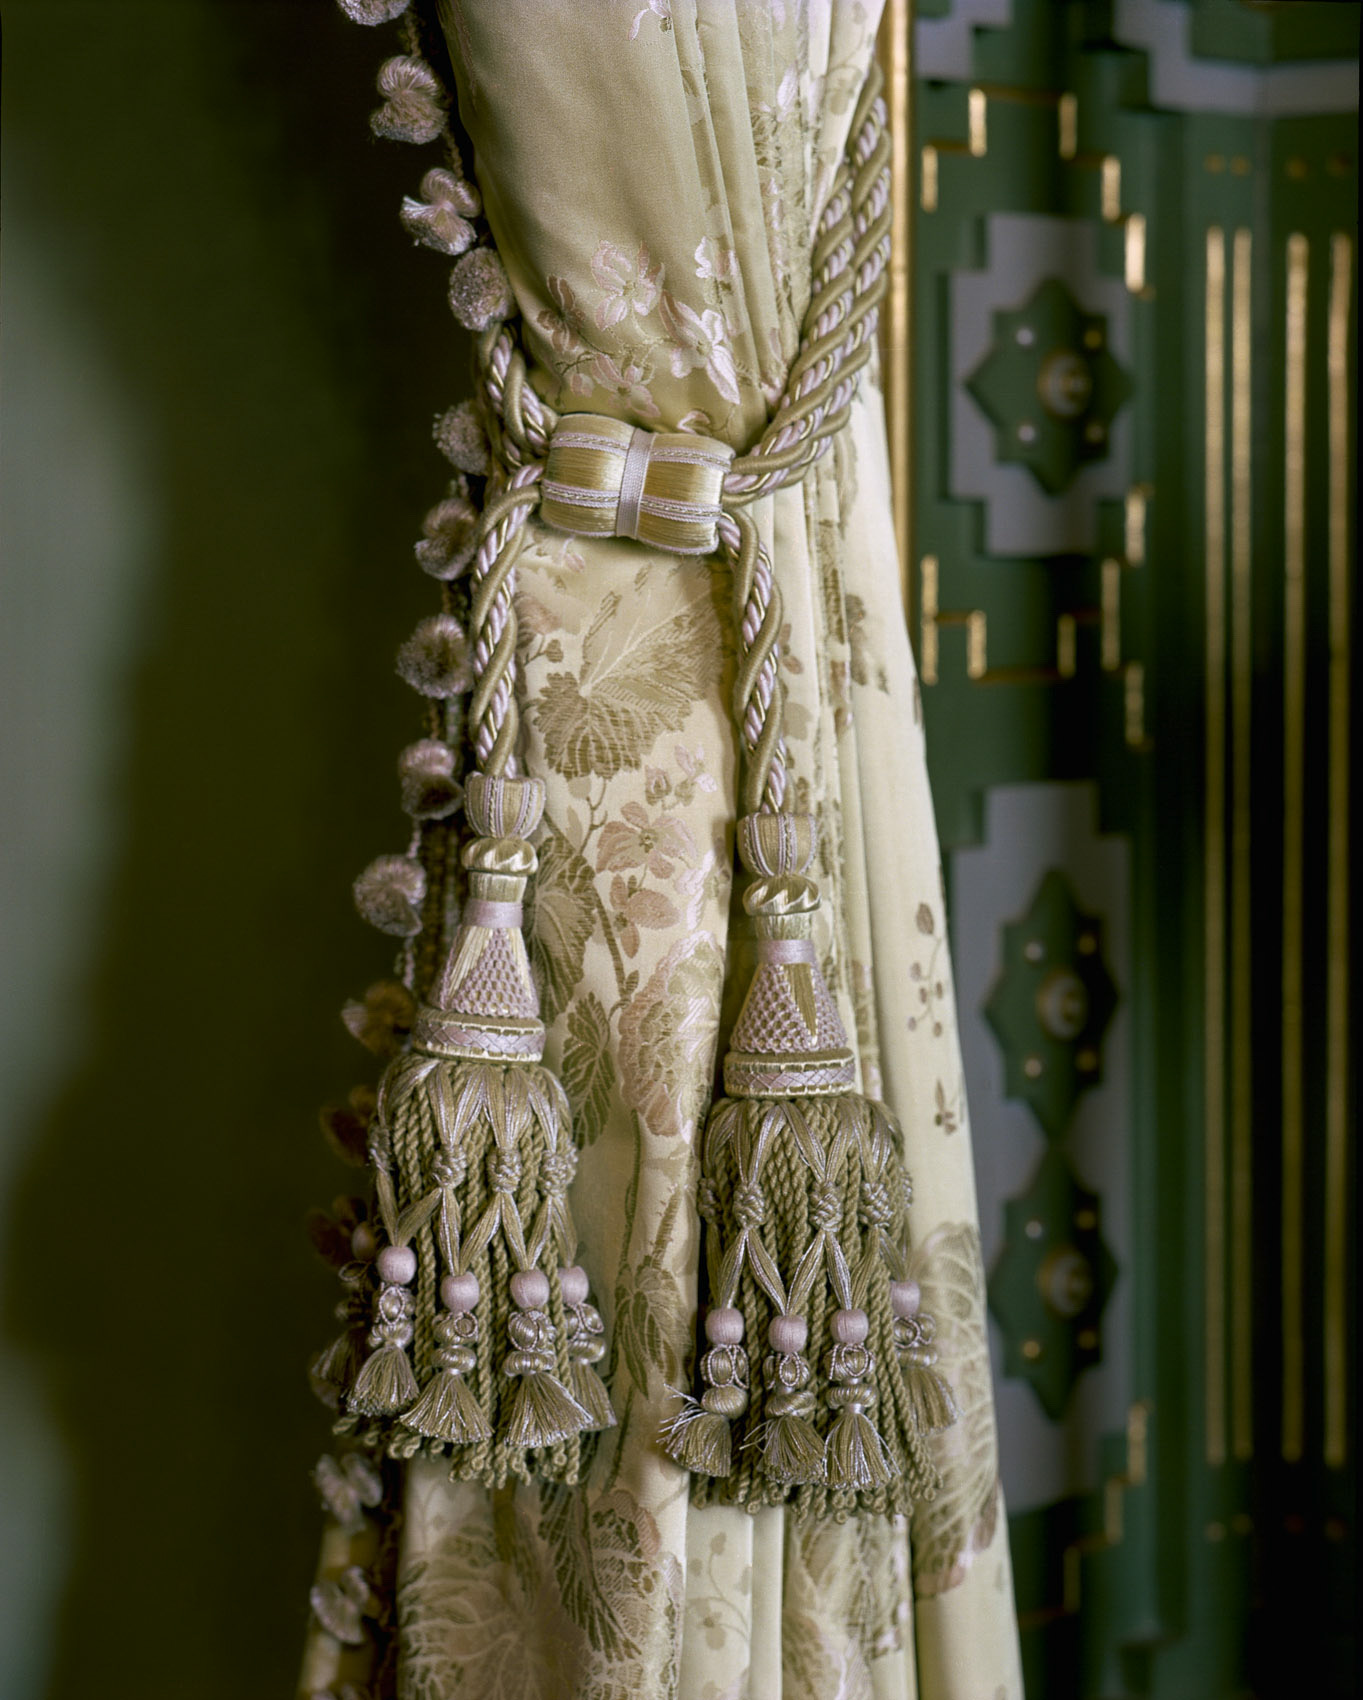 O18-465 Heavy silk drapery Falaknuma Palace, Hyderabad